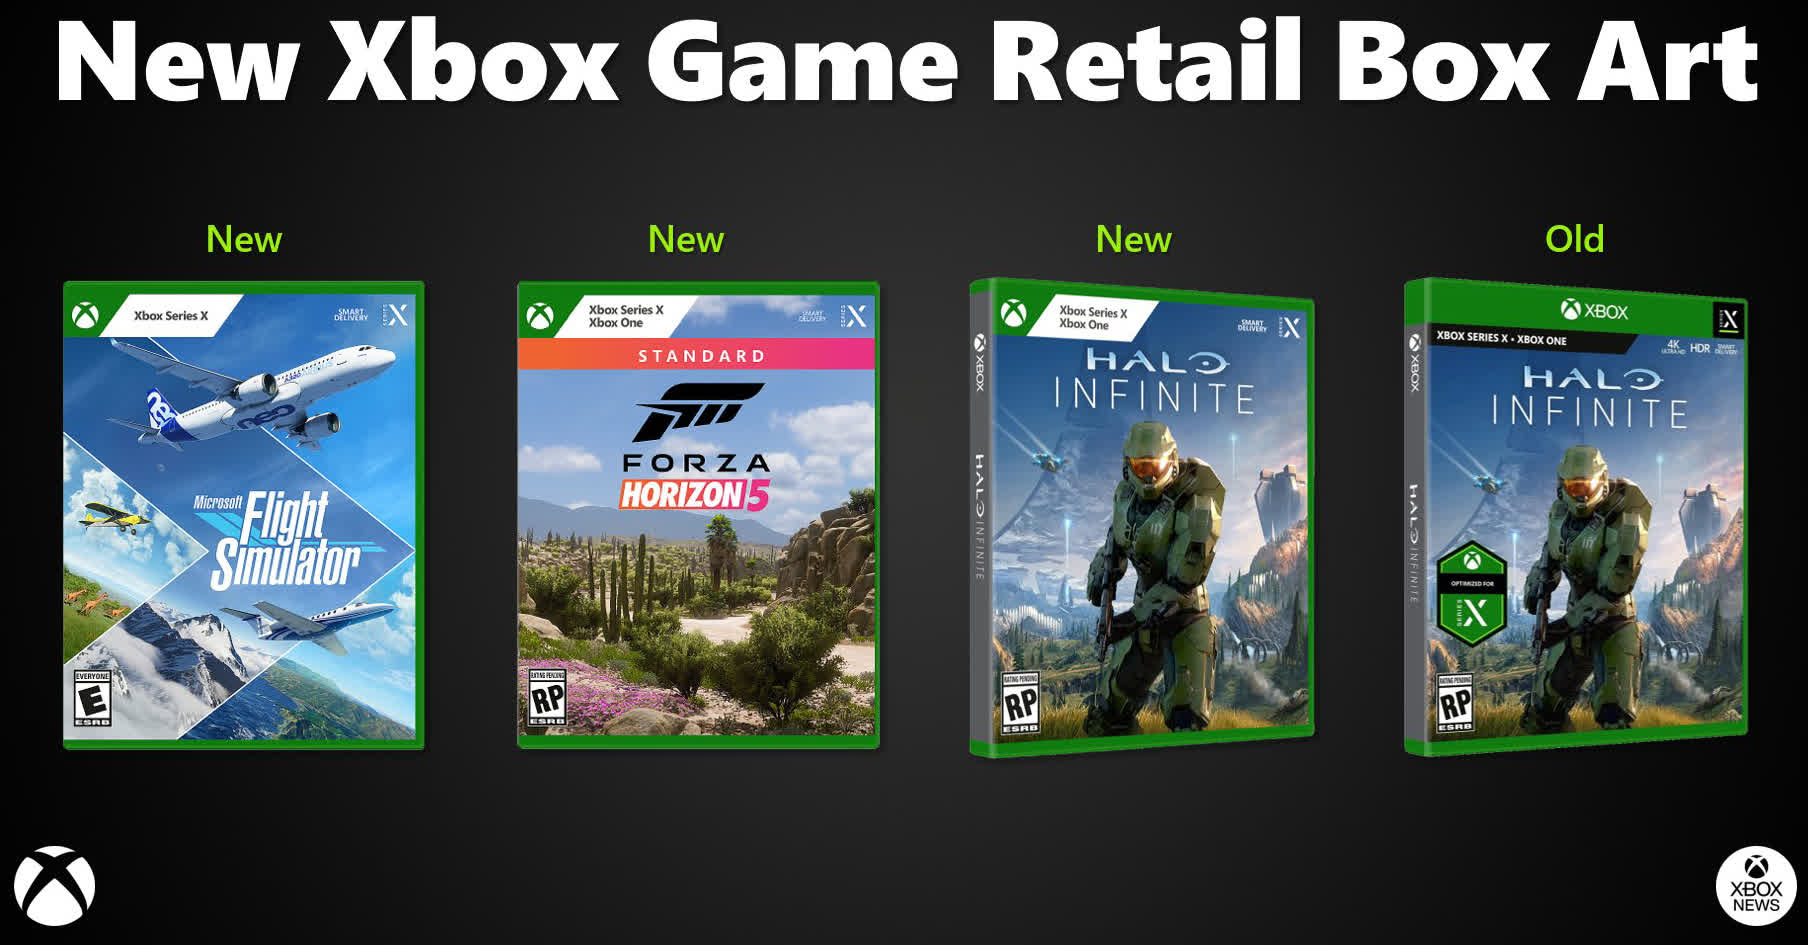 Microsoft quietly updates Xbox game packaging design